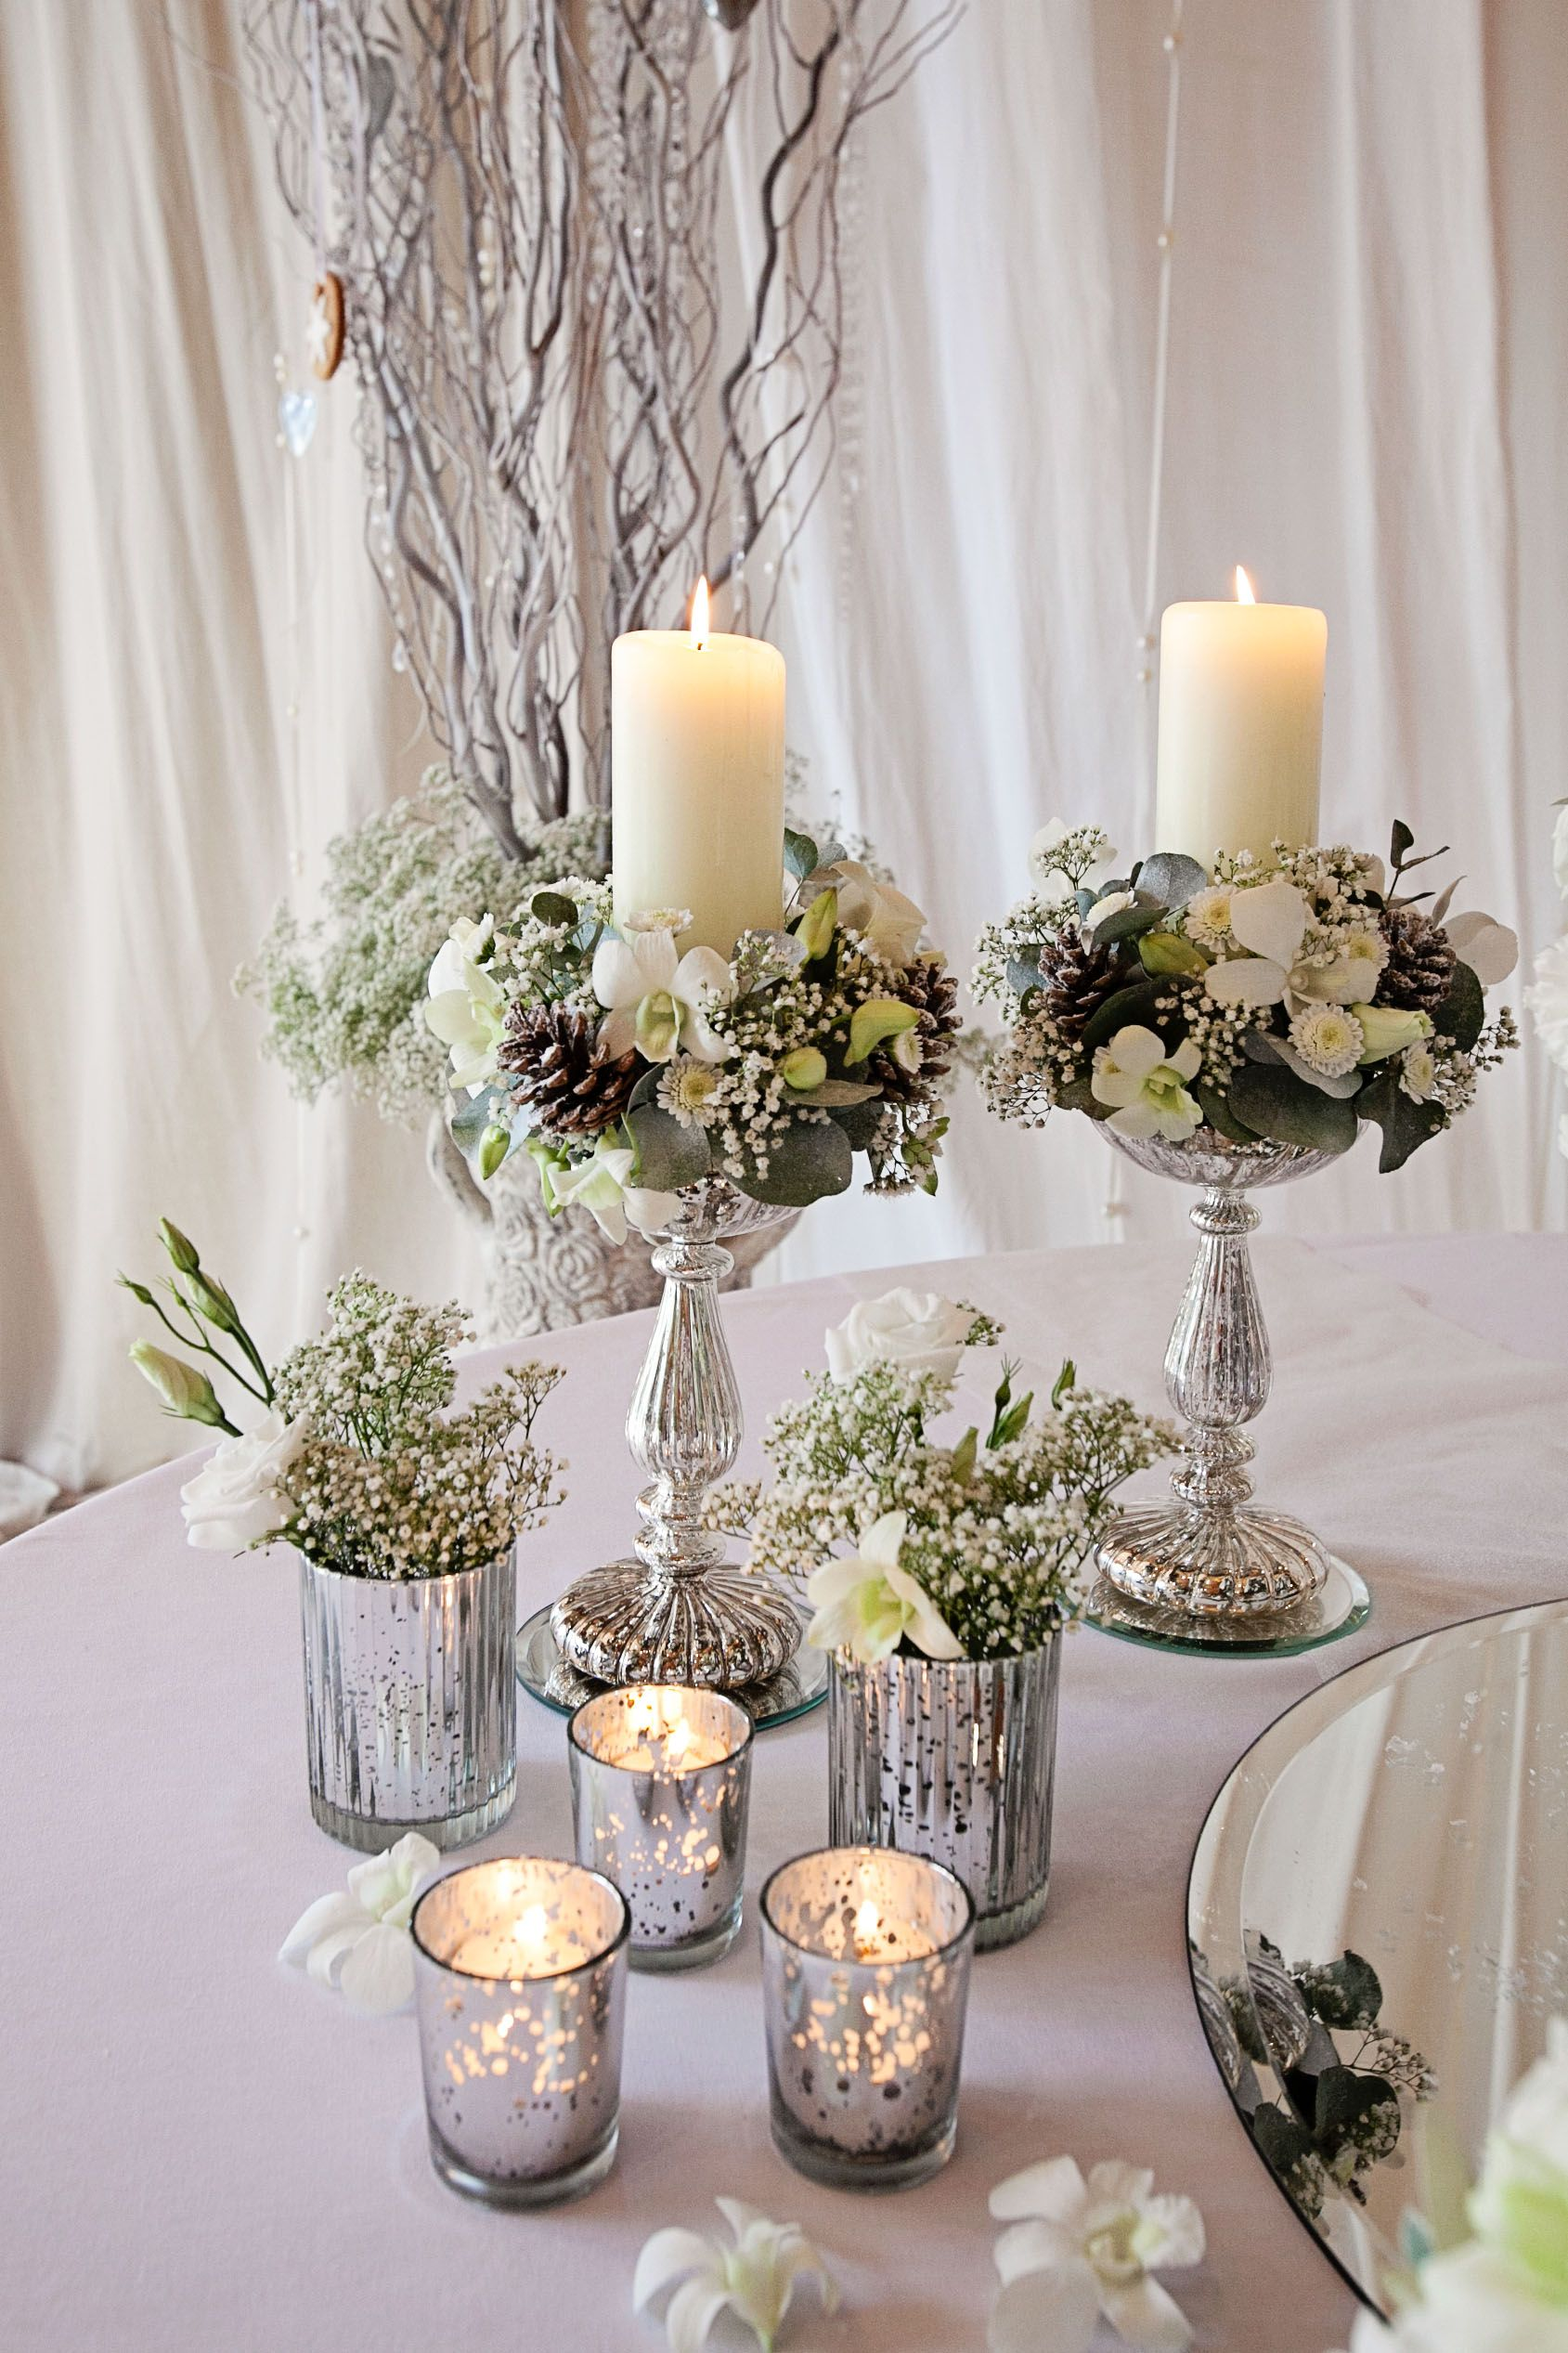 Tiara flower arrangements candle stand arrangements and for Floral table decorations for weddings